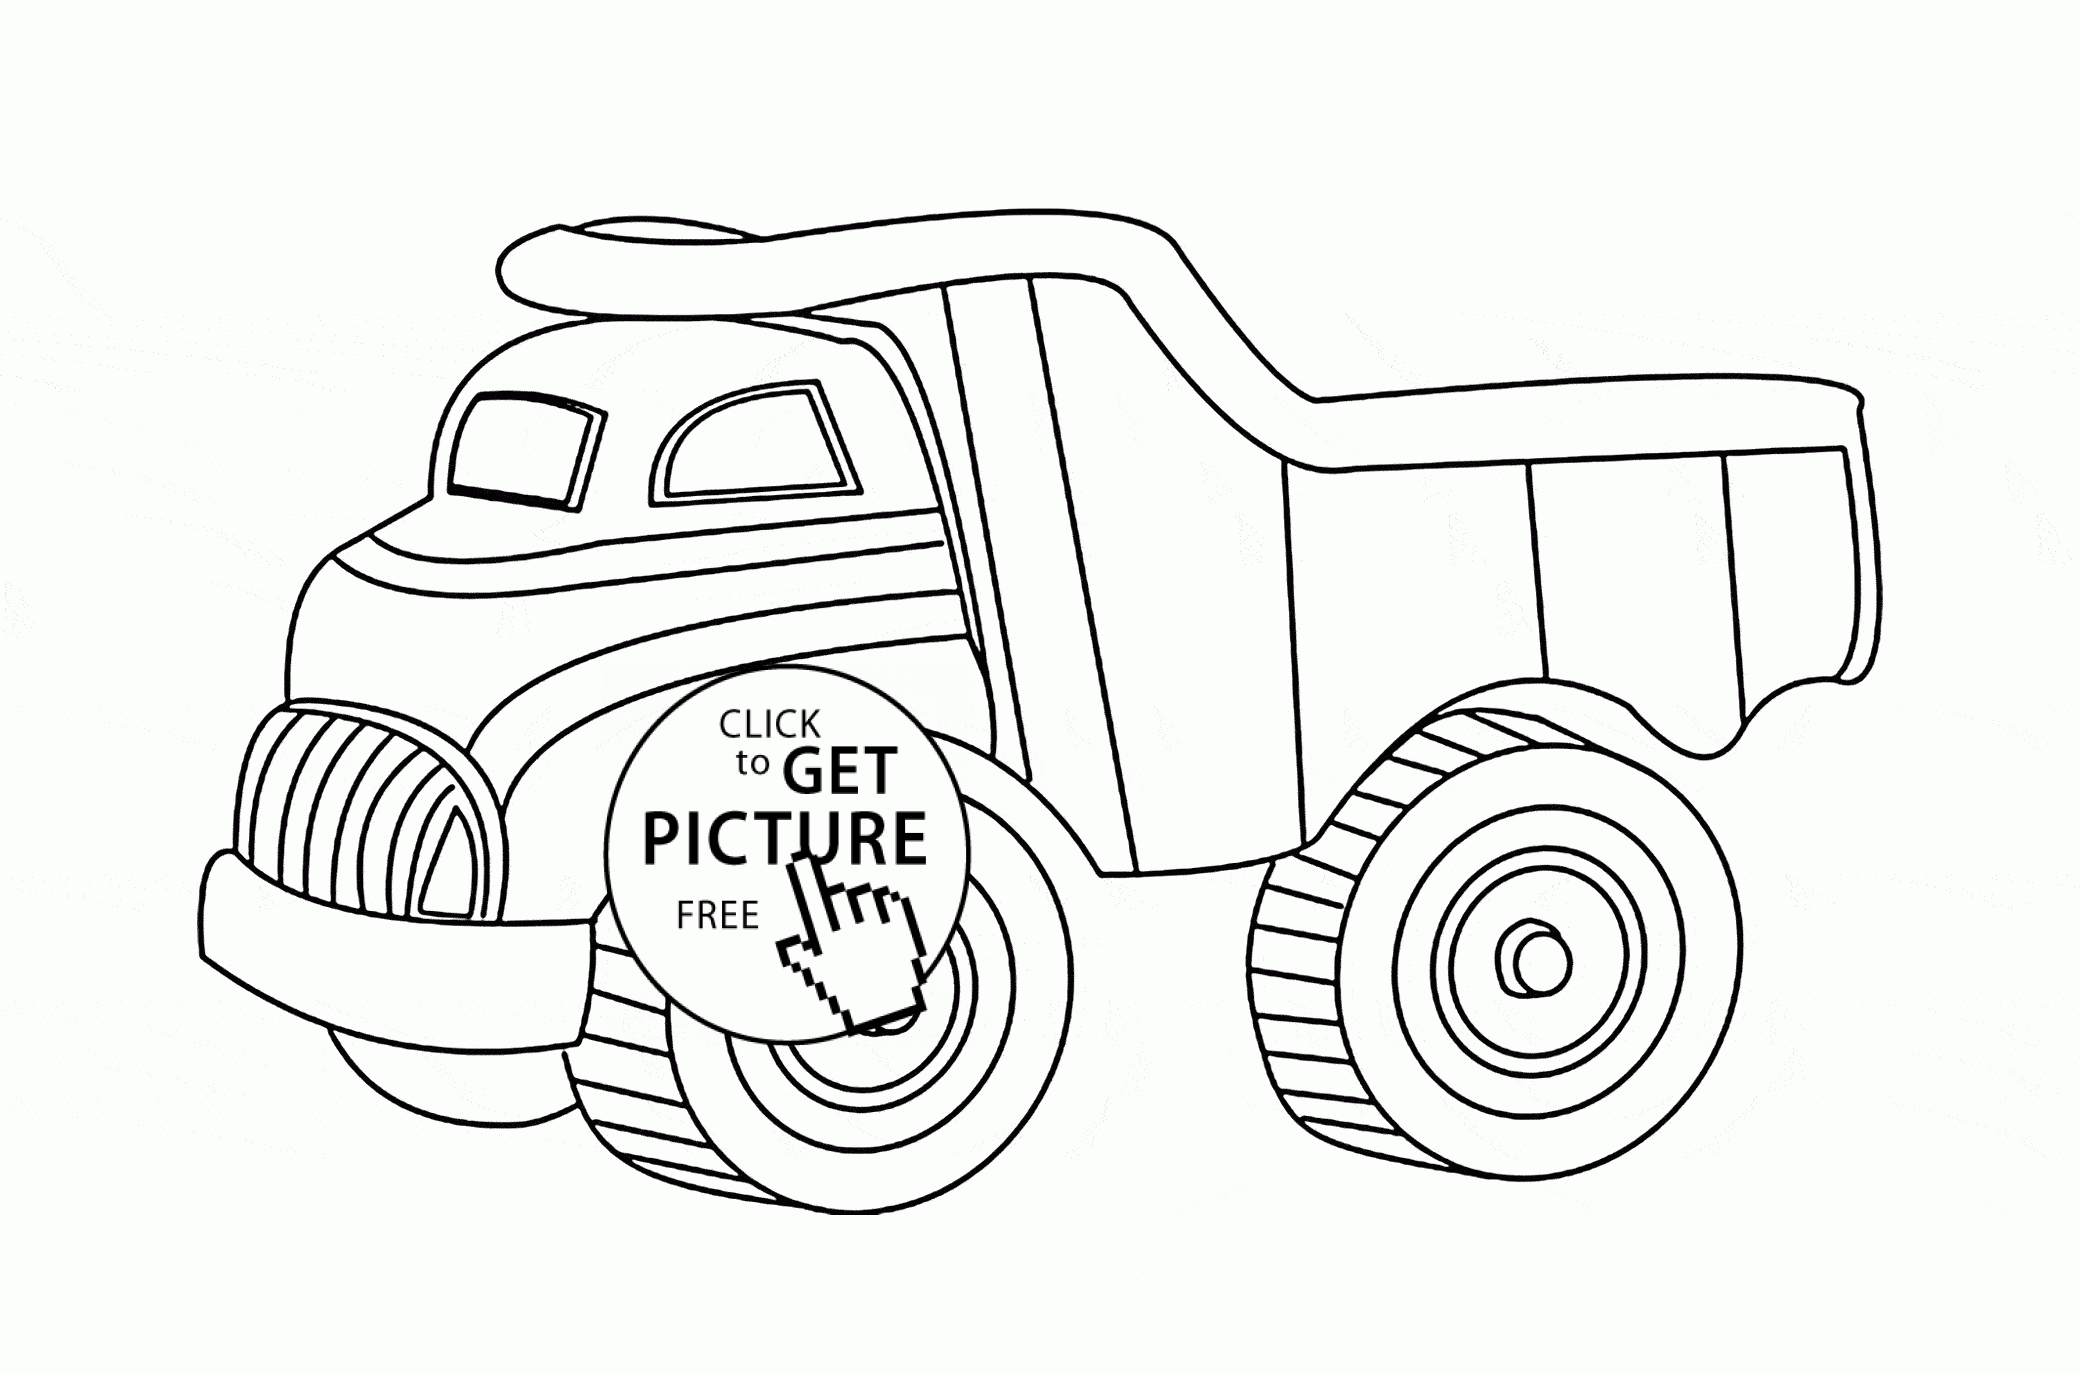 dump truck coloring pages - toy dump truck coloring page for kids transportation coloring pages printables free